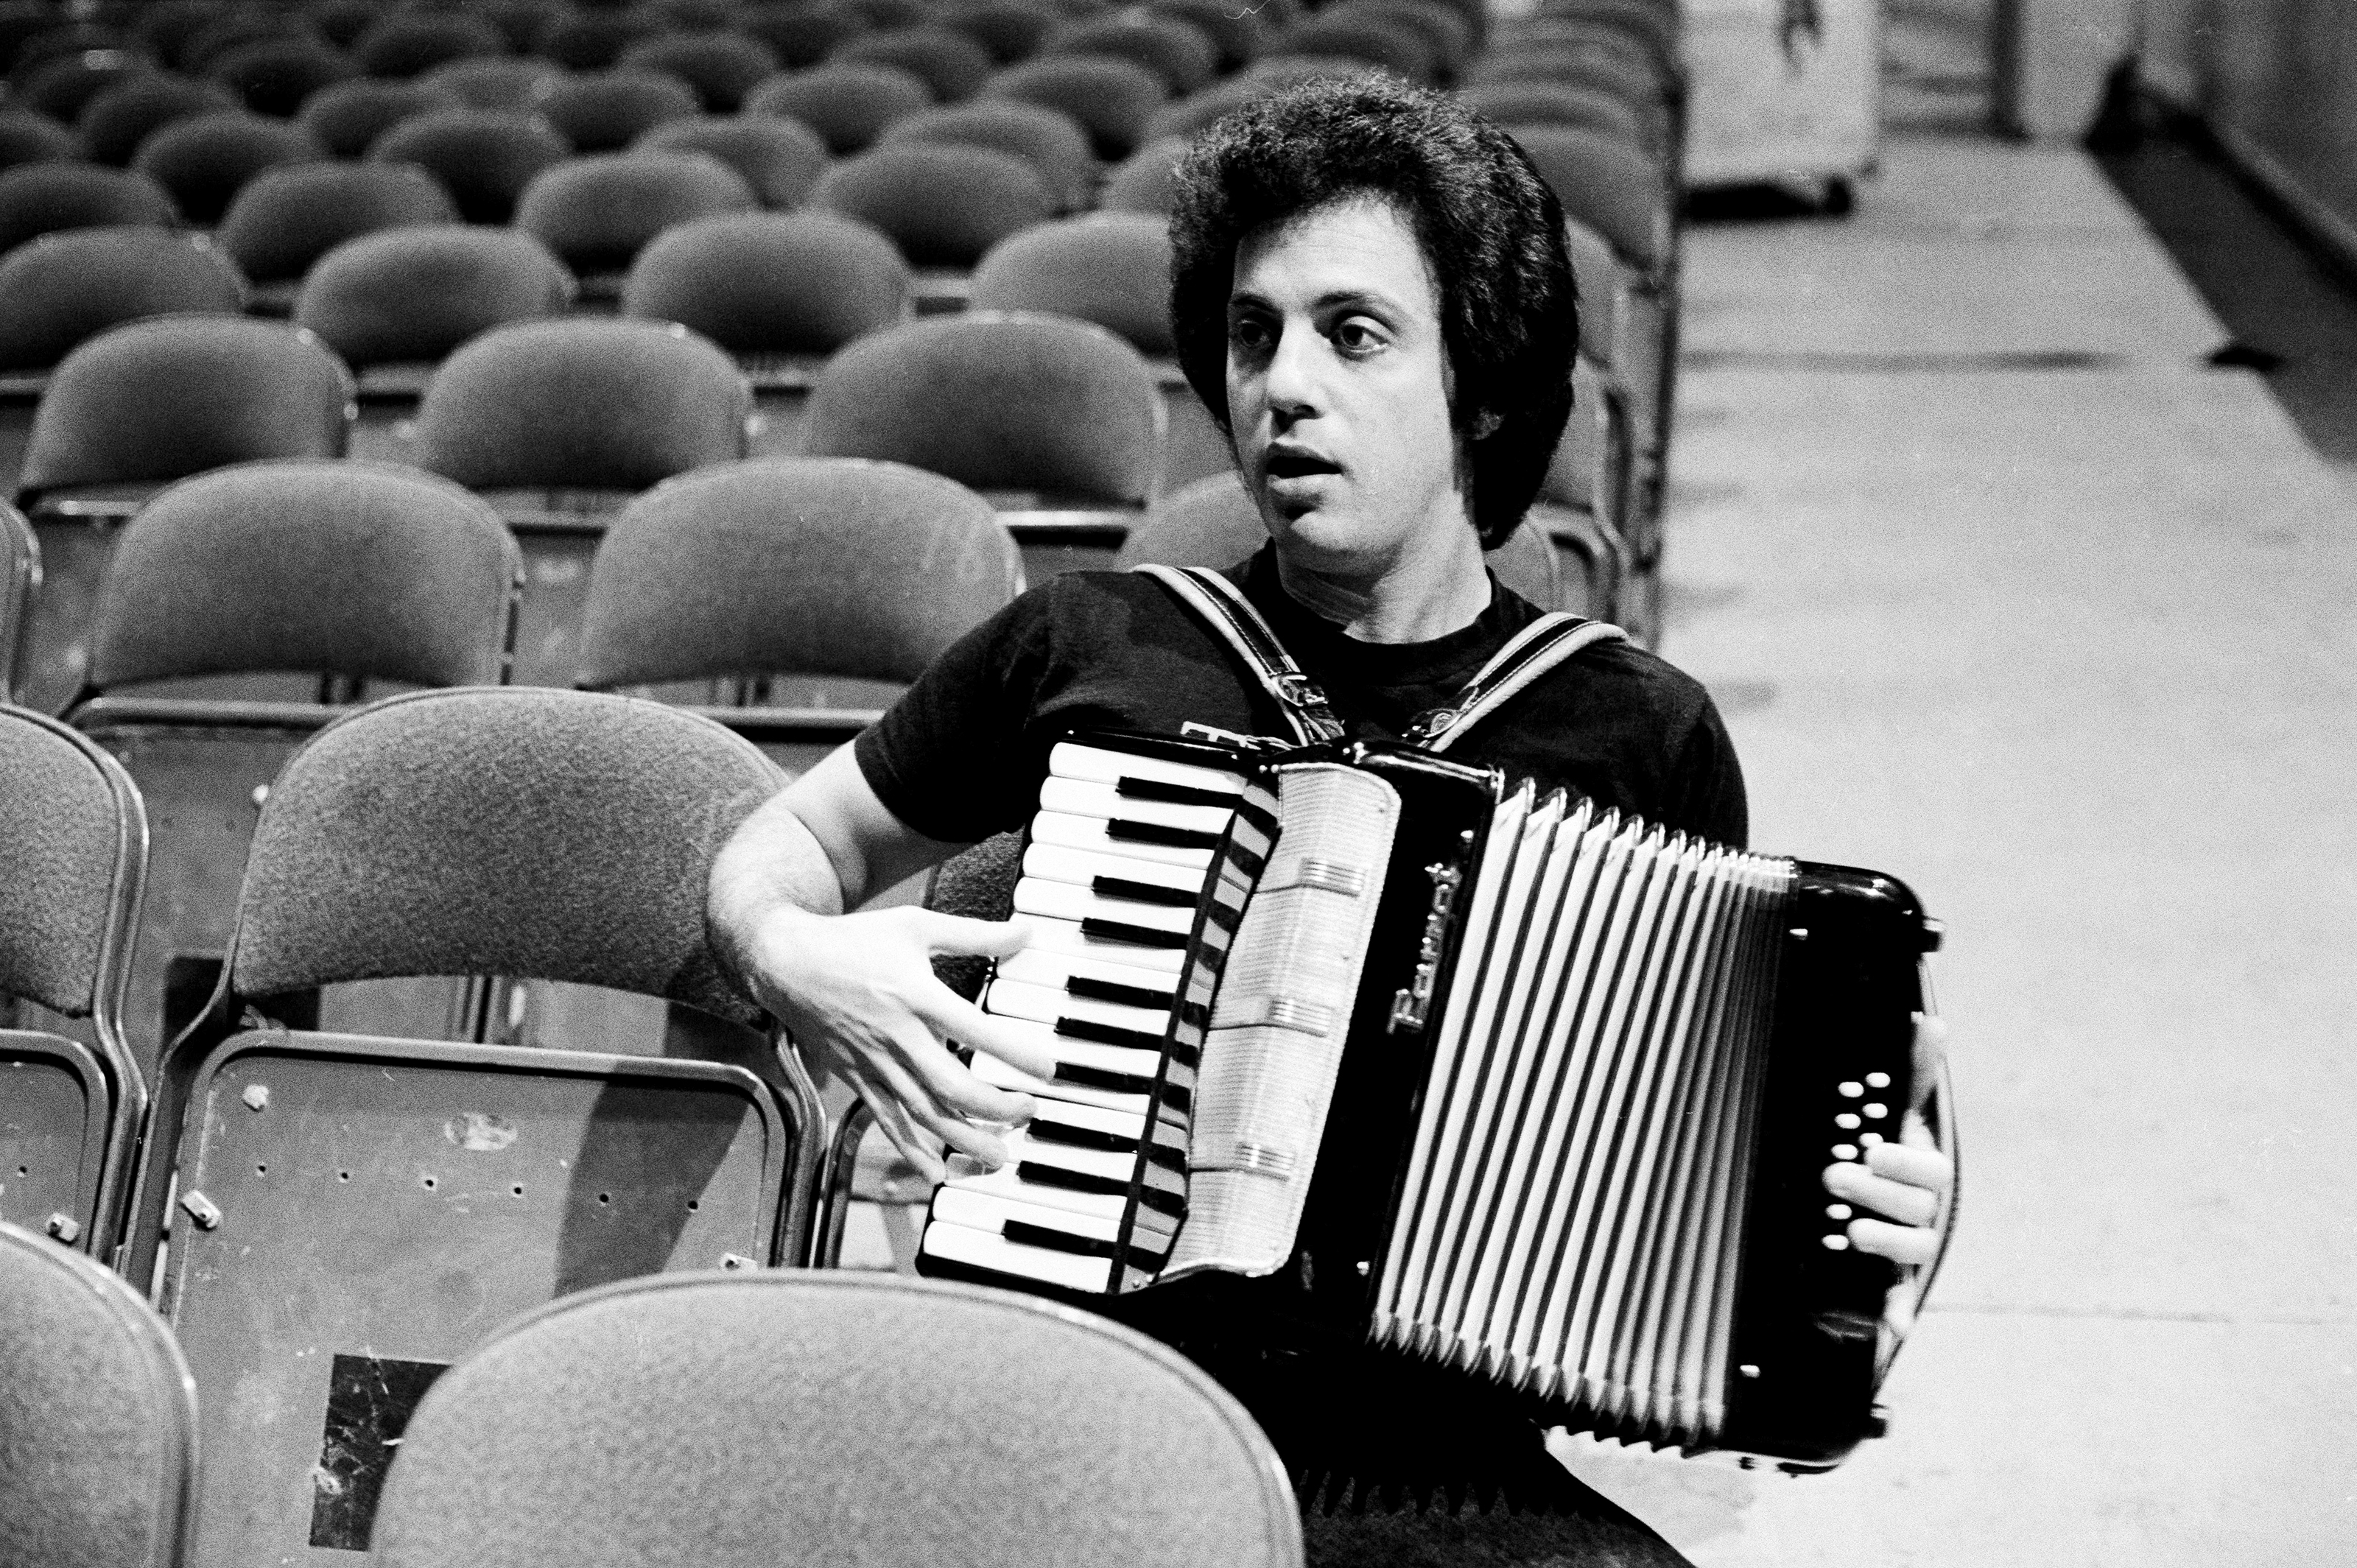 Billy Joel's 'The Stranger' at 40: A Track-by-Track Guide